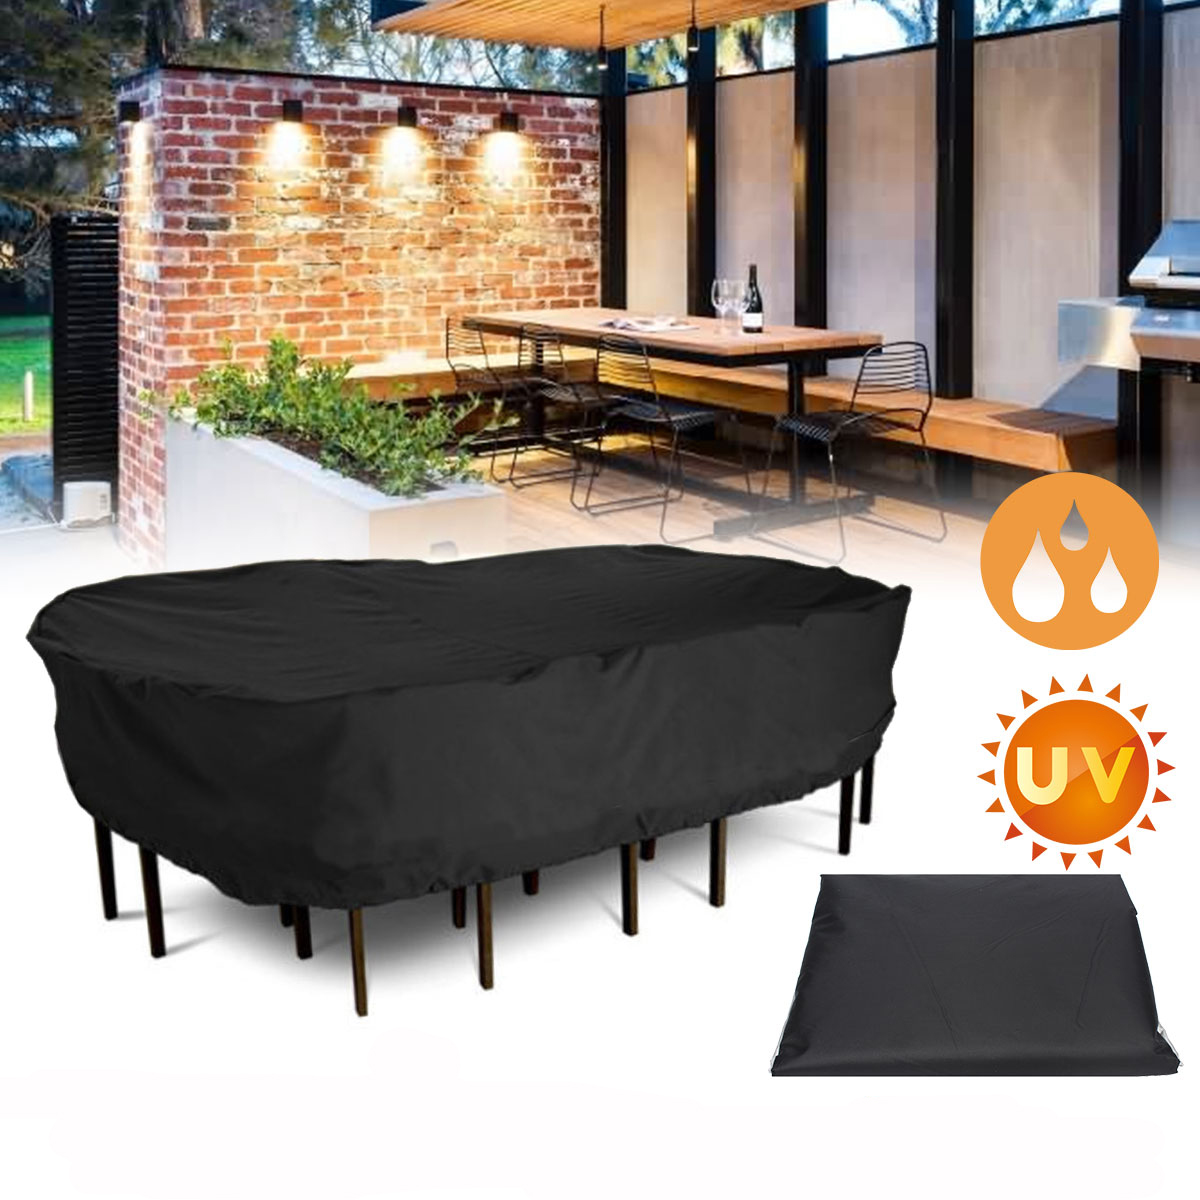 Cool Garden Patio Furniture Winter Cover Waterproof Large Rectangular Table Chair Covers Bralicious Painted Fabric Chair Ideas Braliciousco